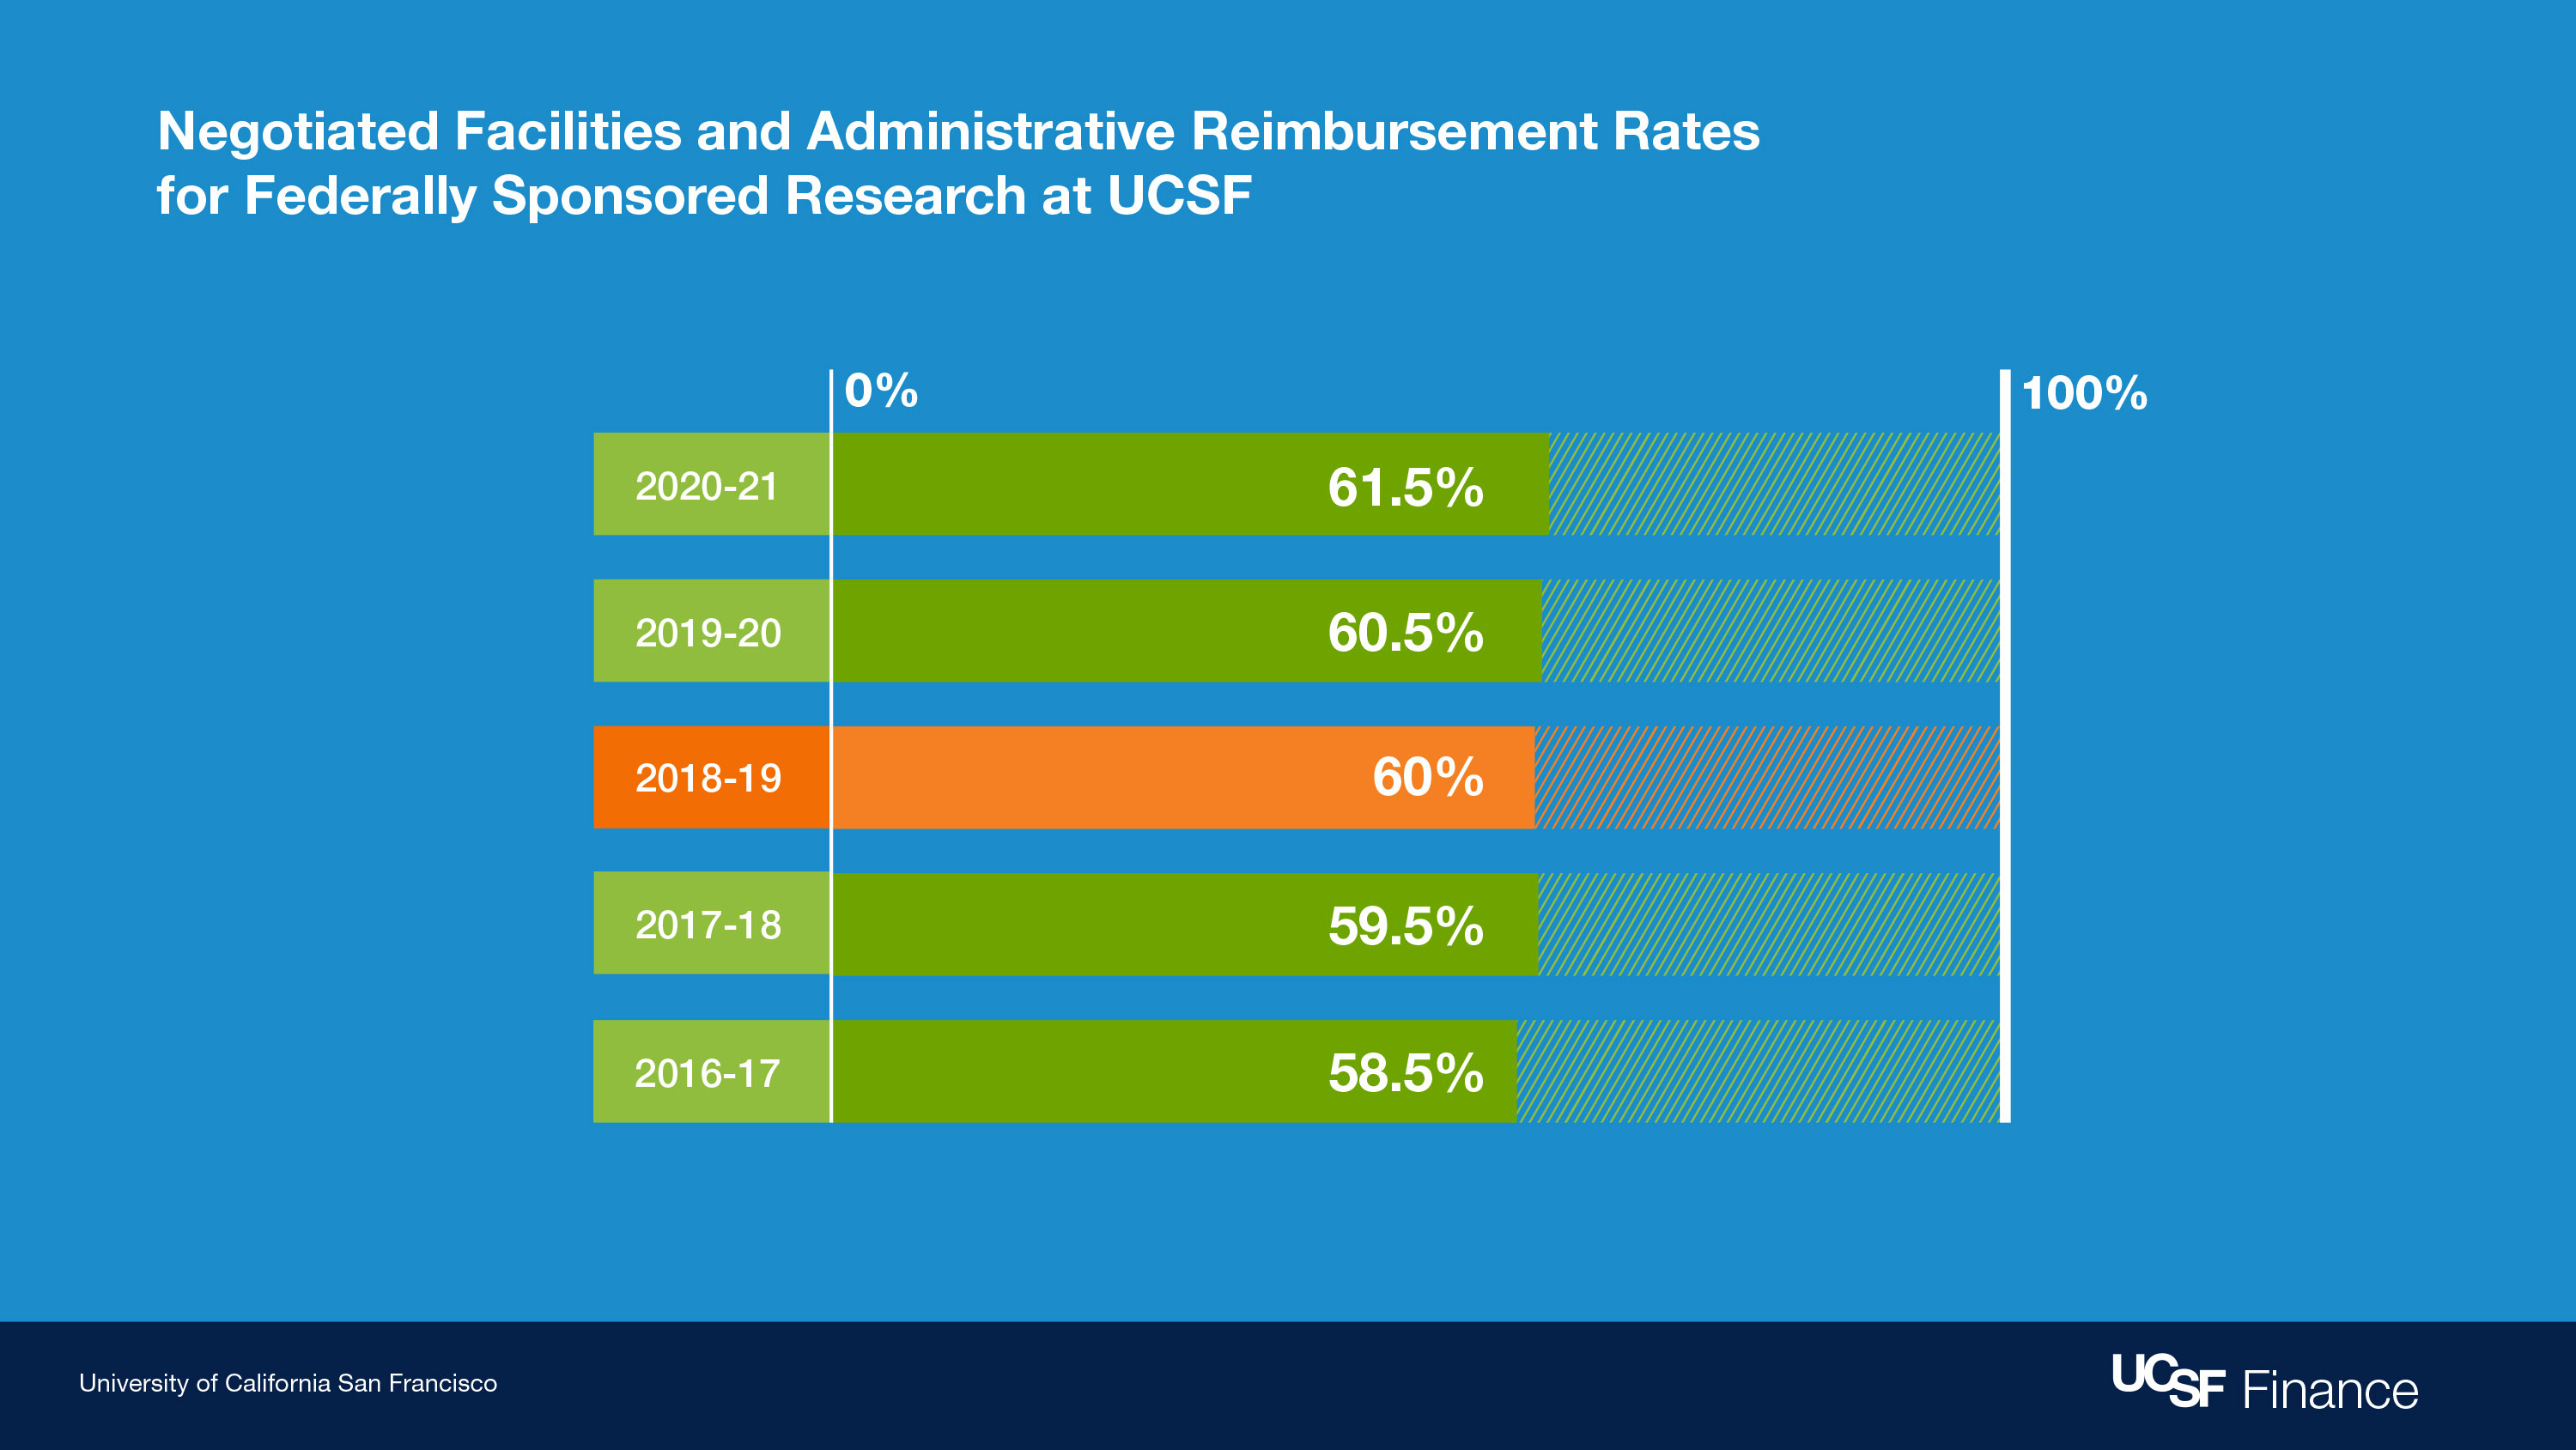 Negotiated facilities and administrative reimbursement rates for federally sponsored research at UCSF.